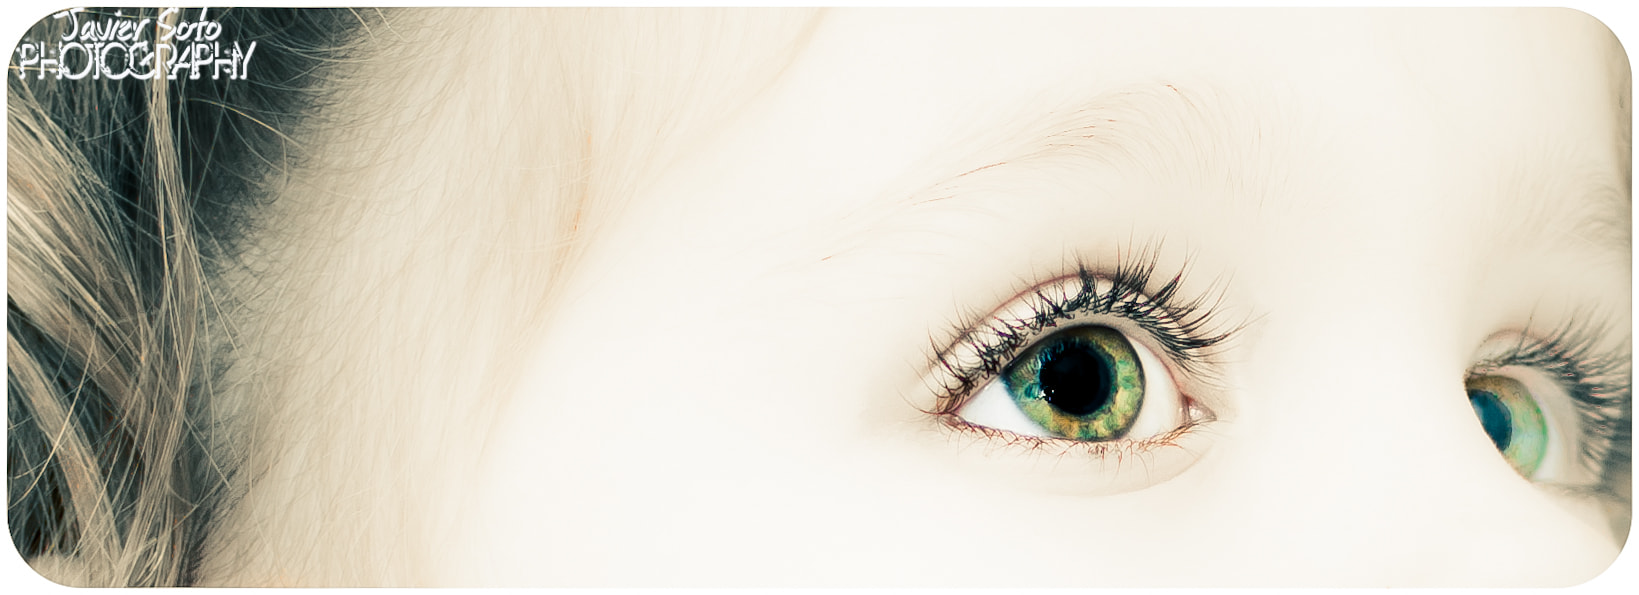 Photograph Eye by Javier Soto on 500px